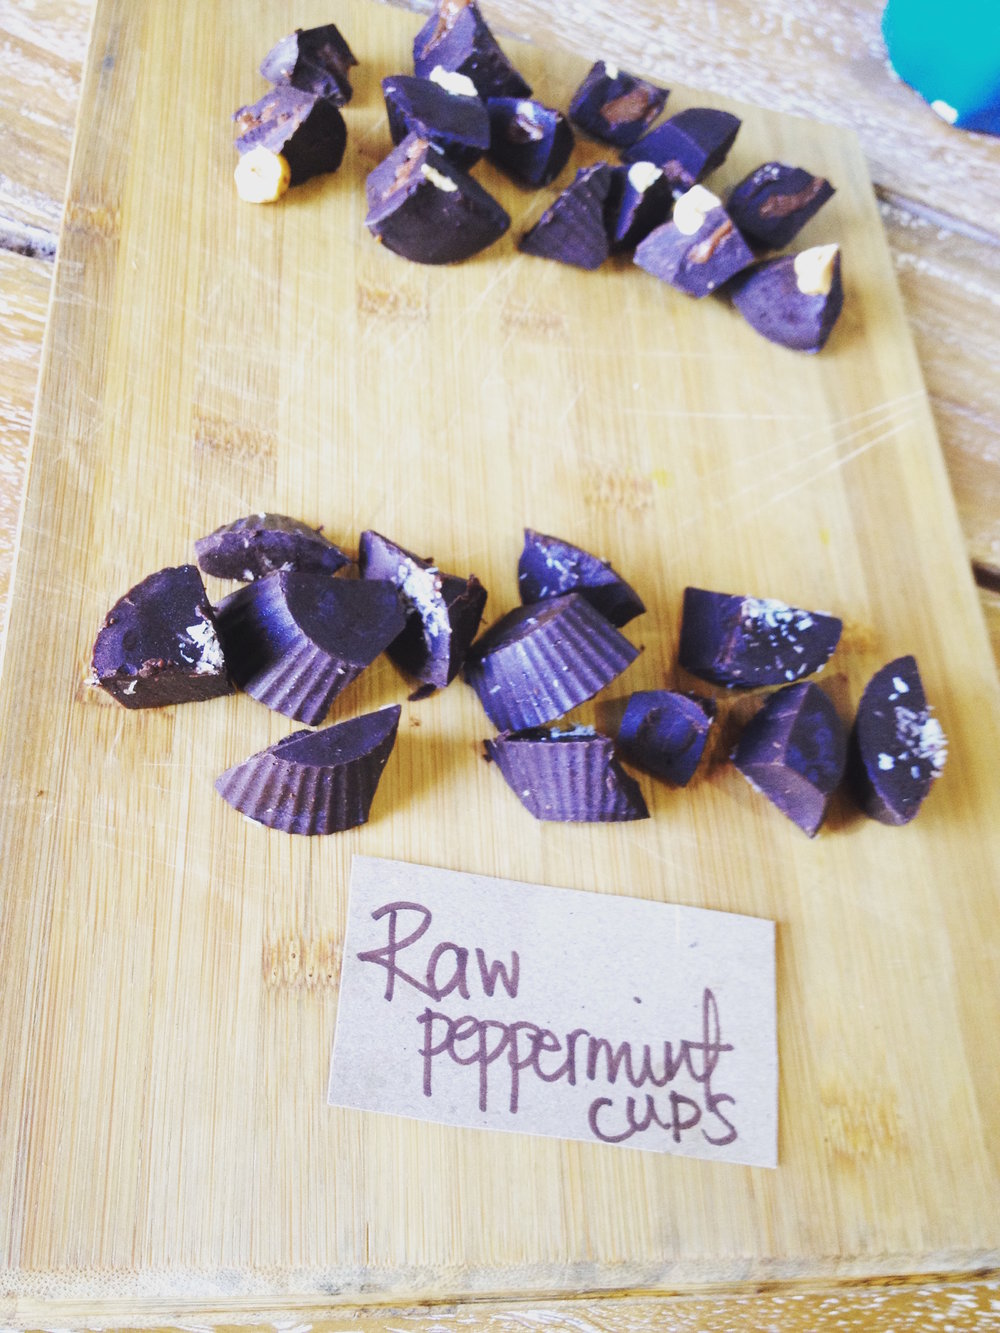 Raw Peanut Butter Cups and Raw Peppermint Cups